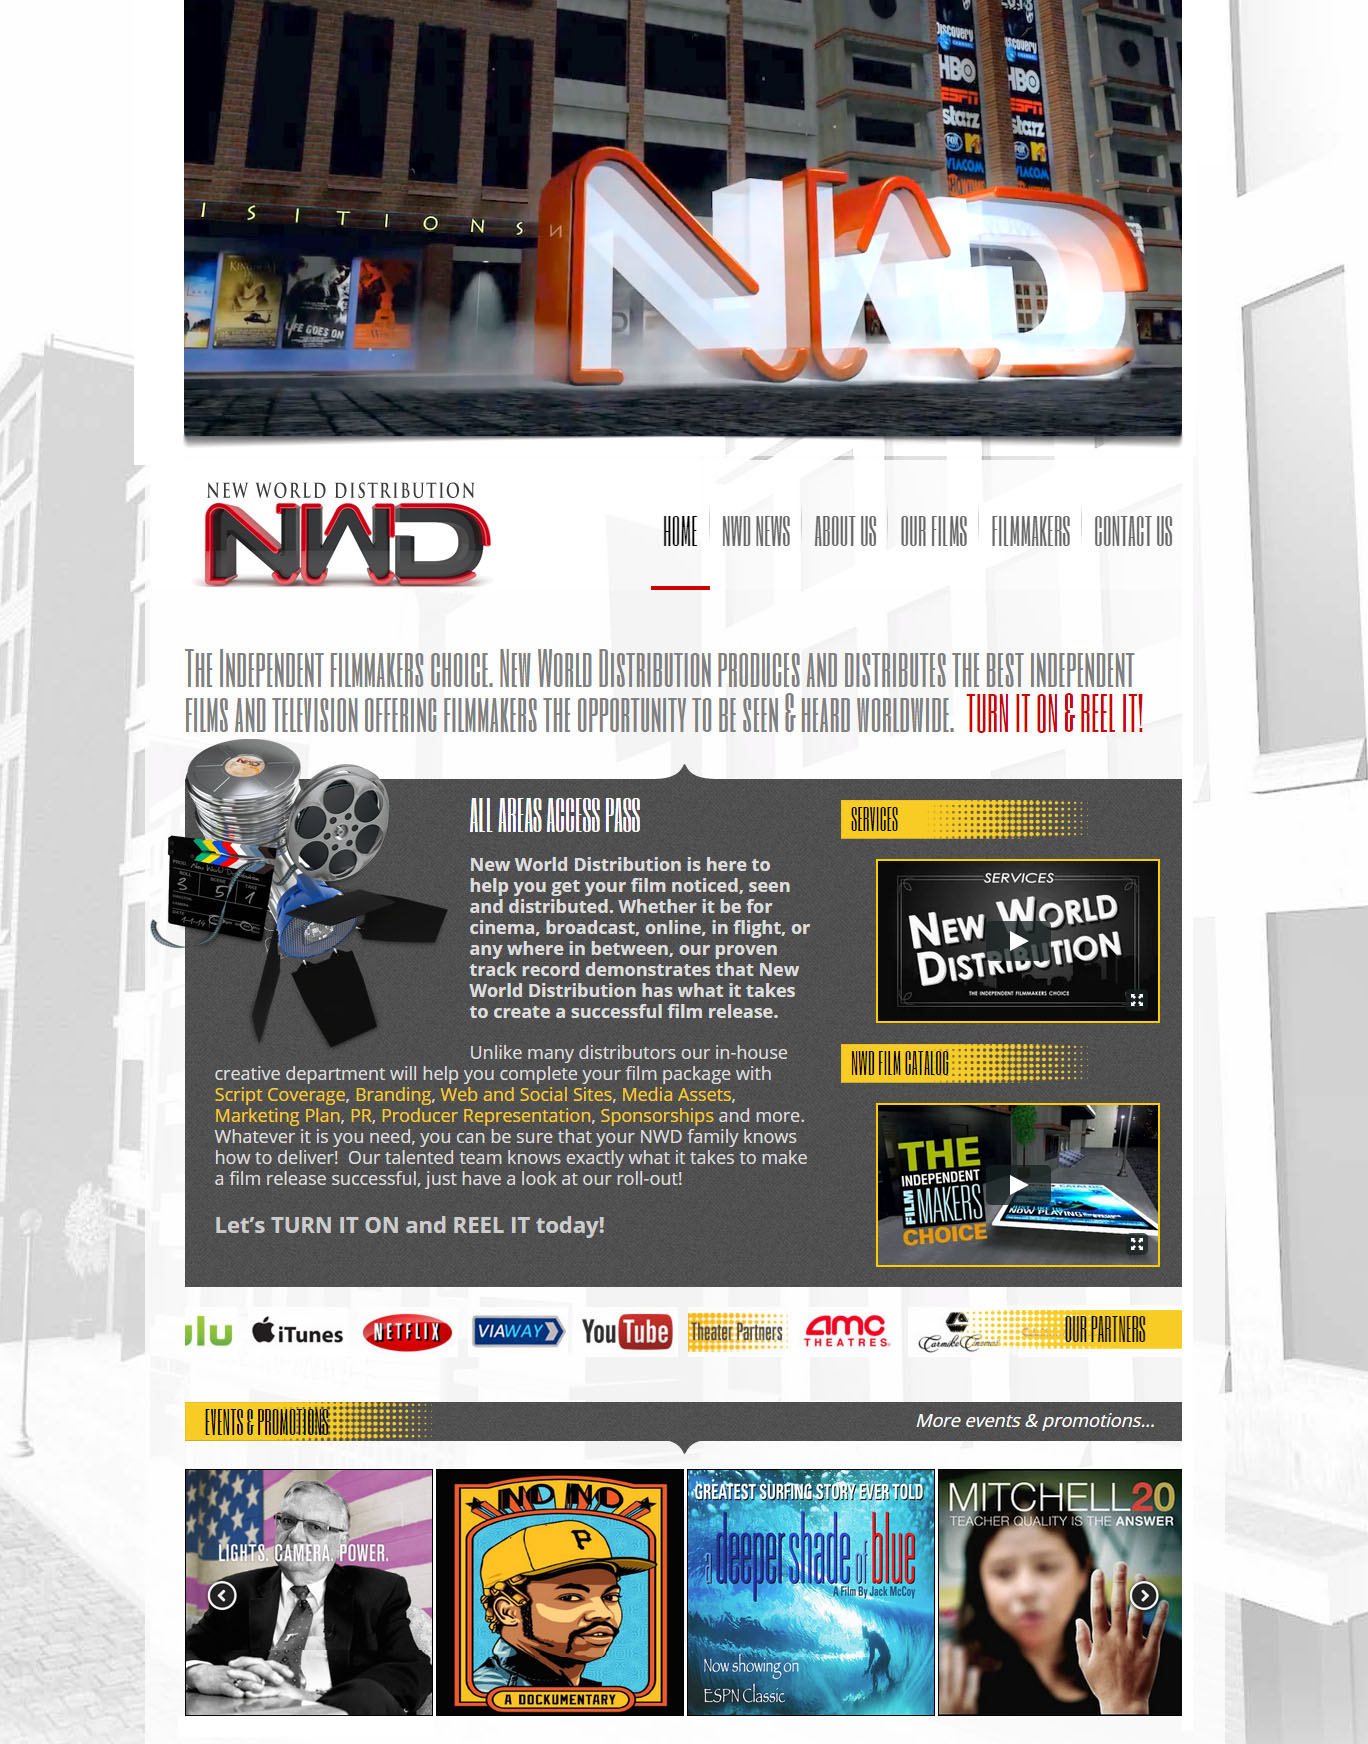 New World Distribution website design